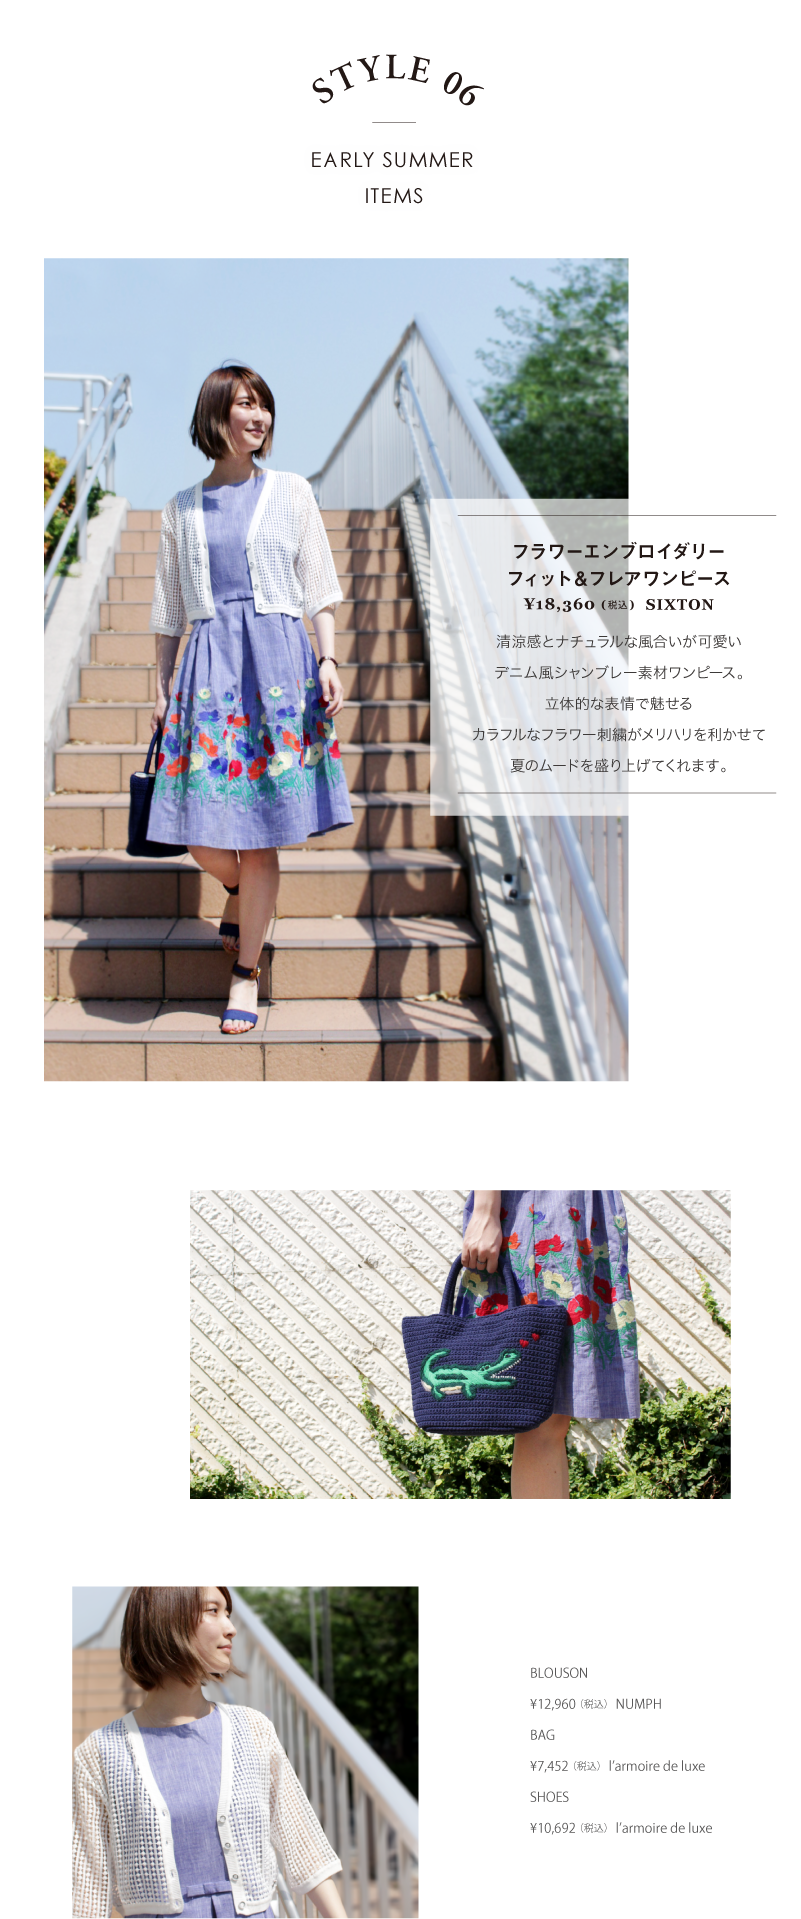 ac-RC_160526_earlysummer-item_vol3_06.png